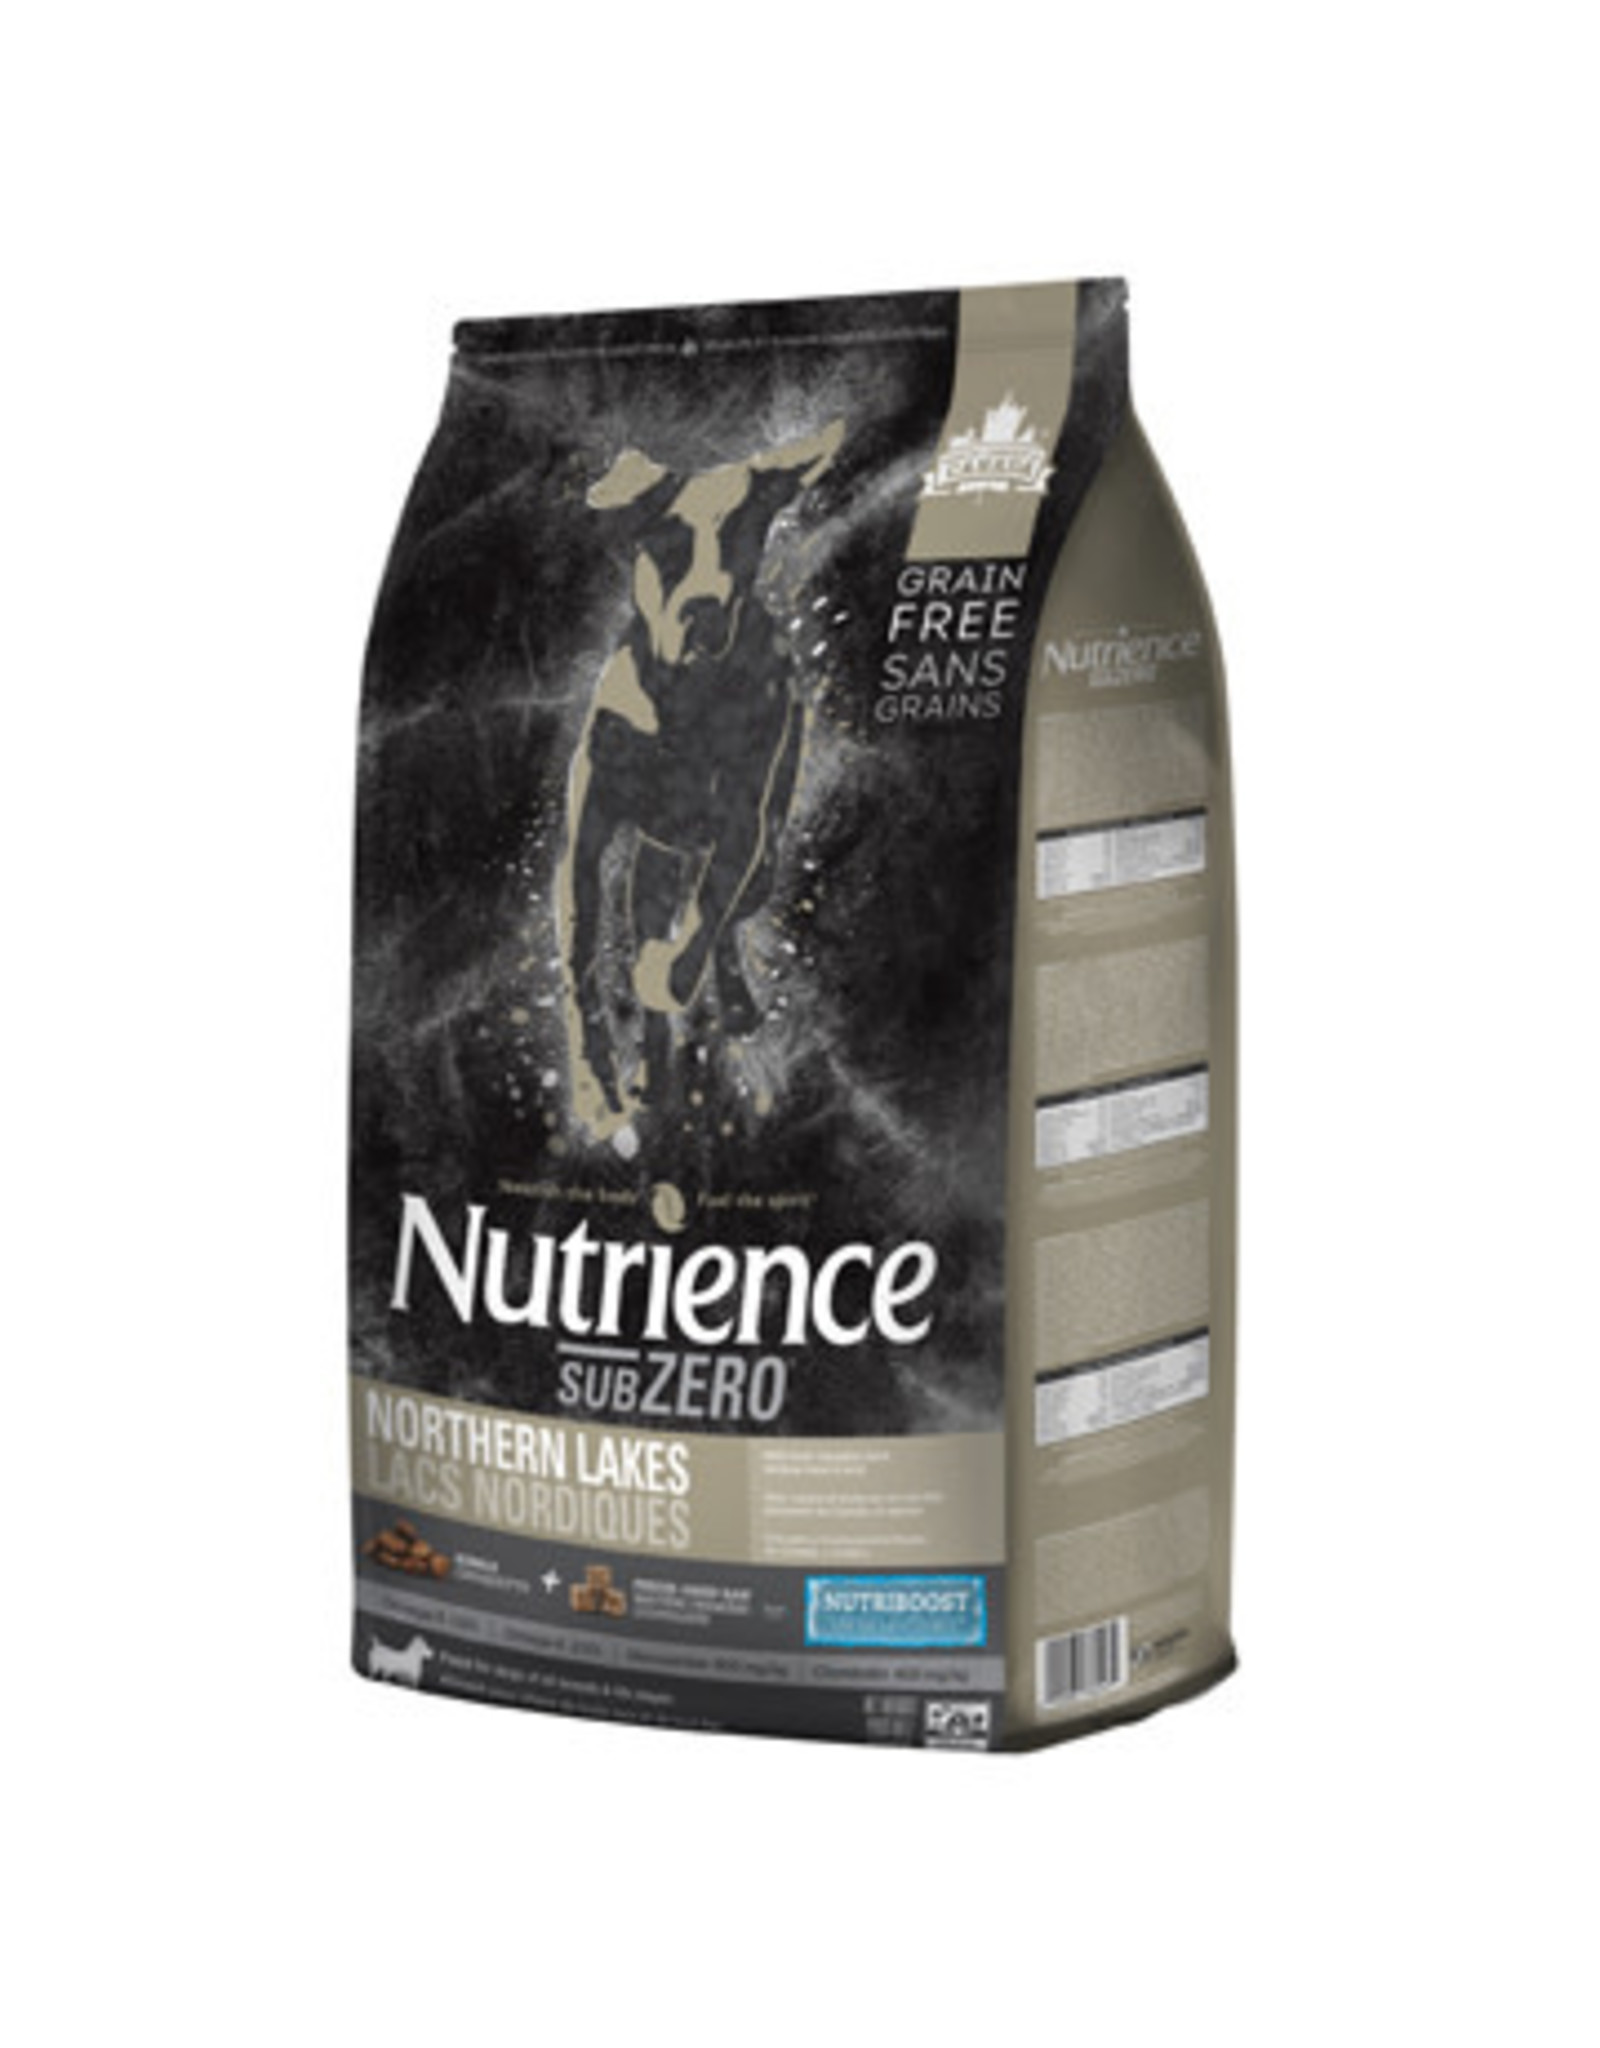 Nutrience Nutrience Grain Free Subzero Northern Lakes for Dogs